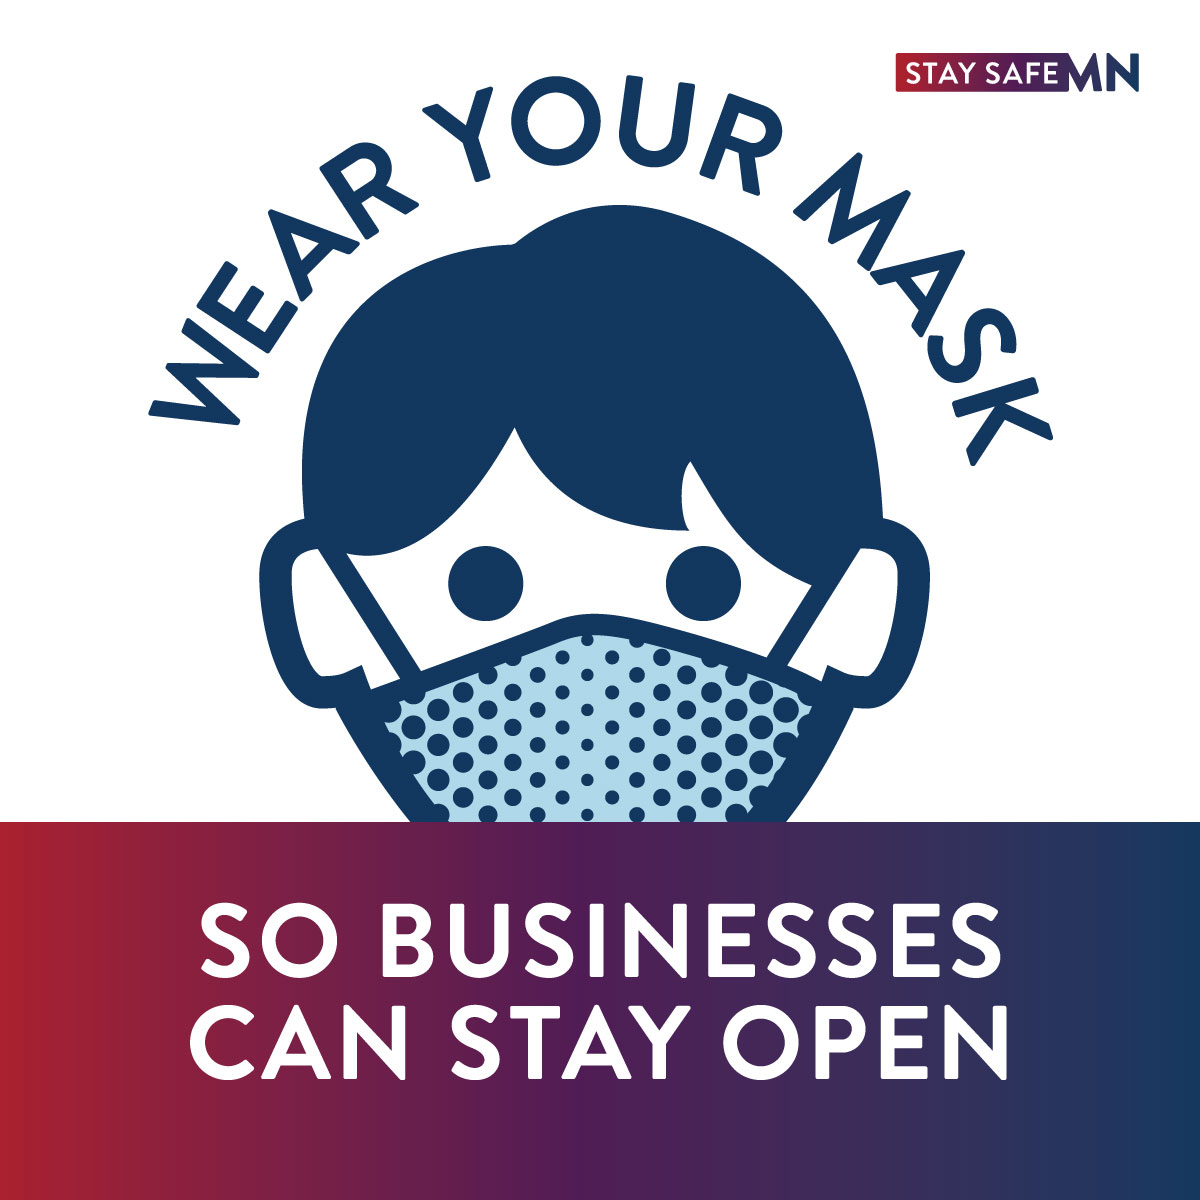 👋Hey Minnesota, wear a mask! The more we slow the spread, the better it is for our economy and the small businesses devastated by COVID-19. #MaskUpMN #StaySafeMN https://t.co/59jLgtn7eo